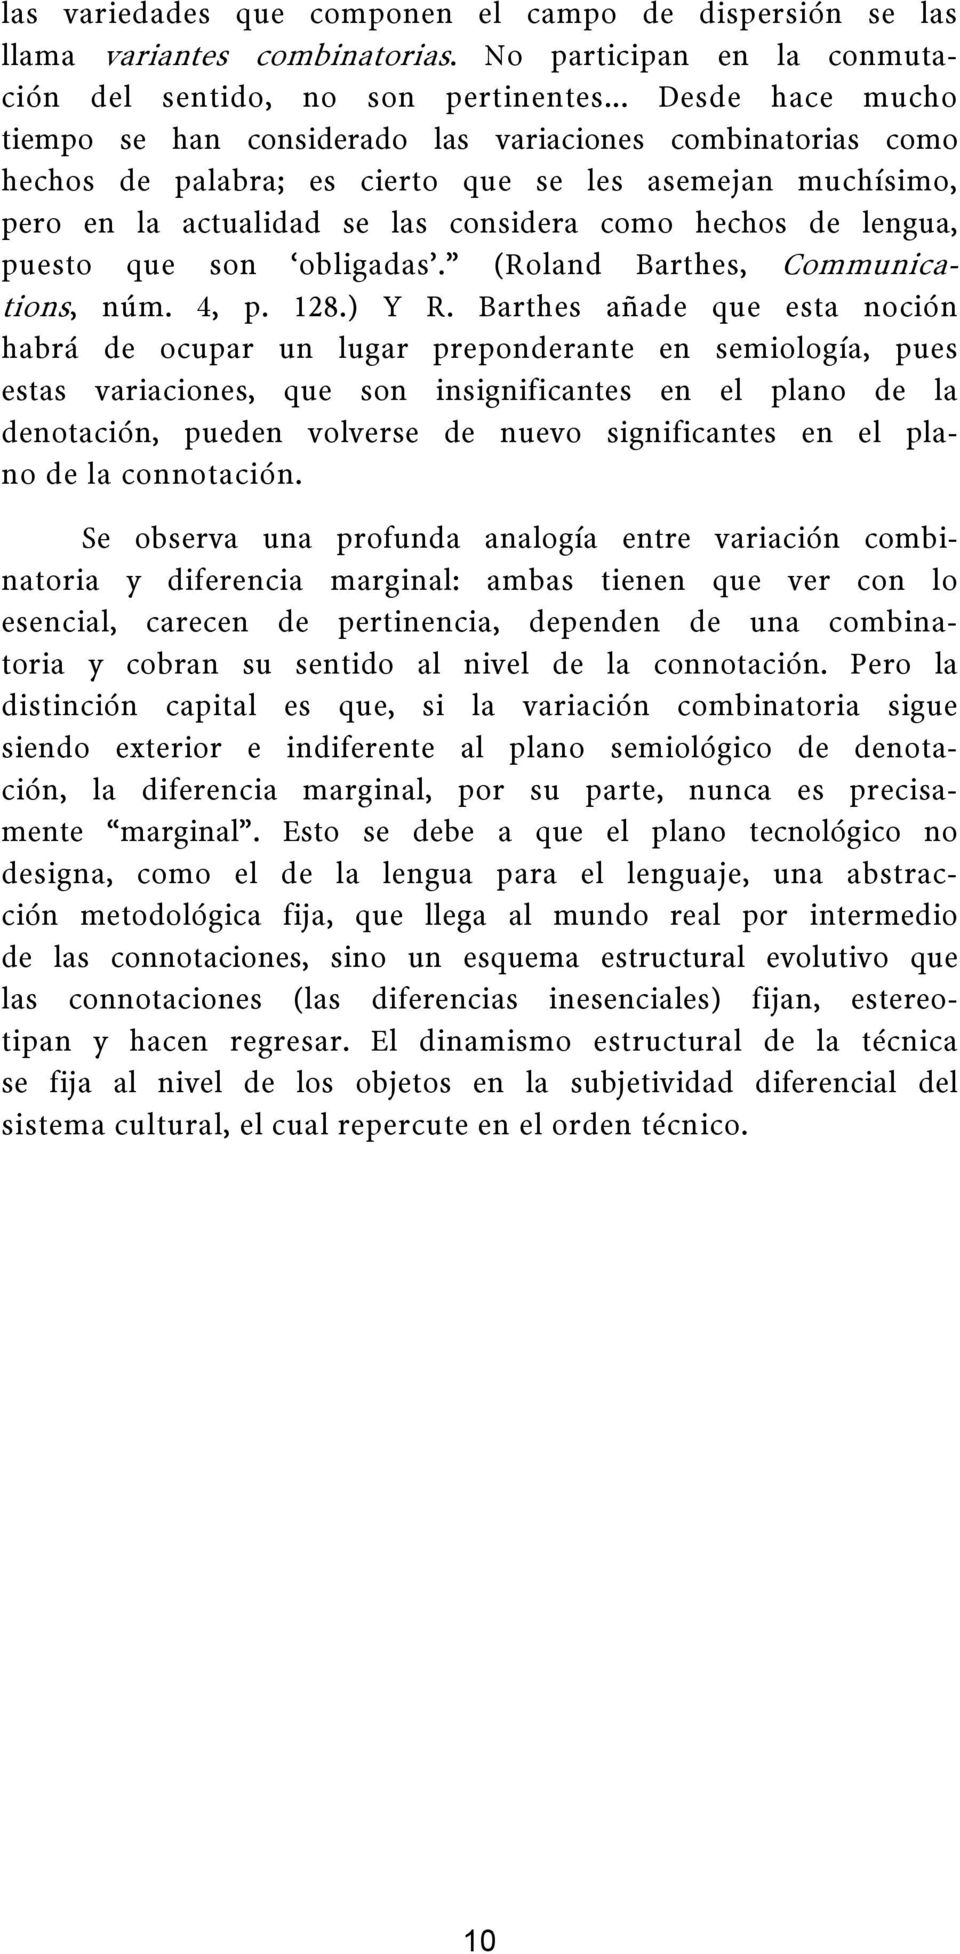 lengua, puesto que son obligadas. (Roland Barthes, Communications, núm. 4, p. 128.) Y R.